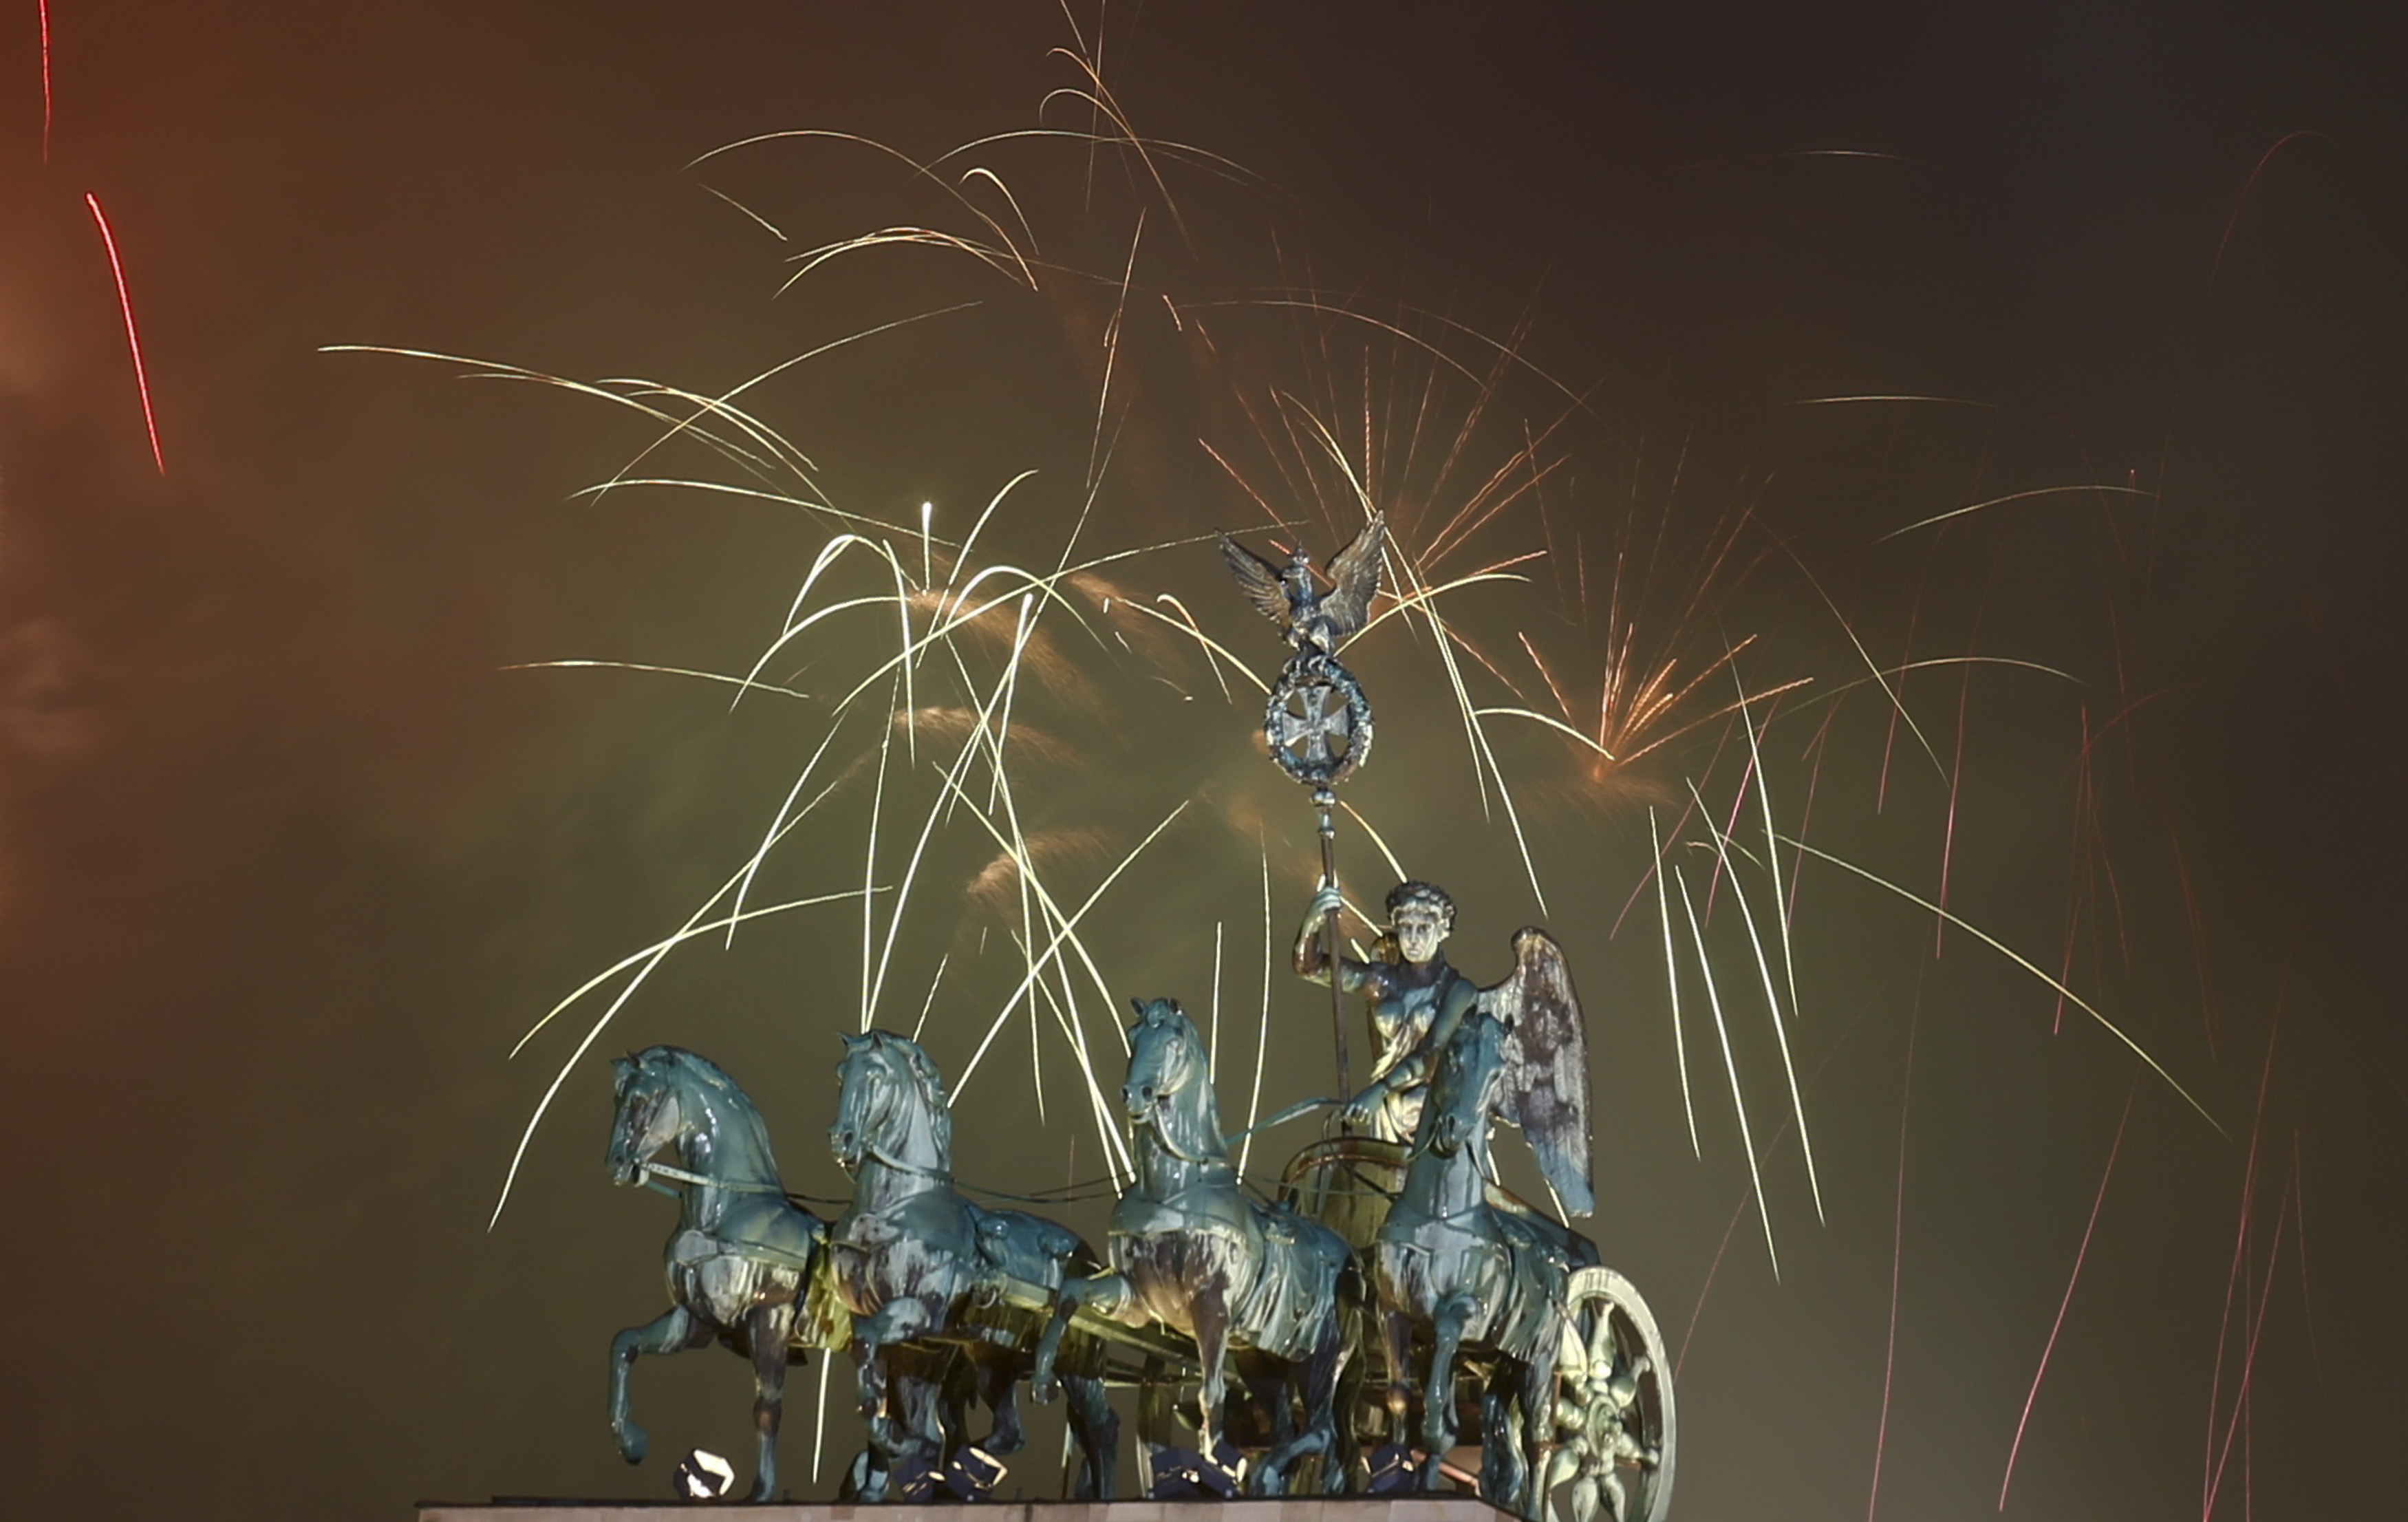 Fireworks explode next to the Quadriga sculpture atop the Brandenburg gate during New Year celebrations in Berlin, Germany.. Photo by Hannibal Hanschke/Reuters